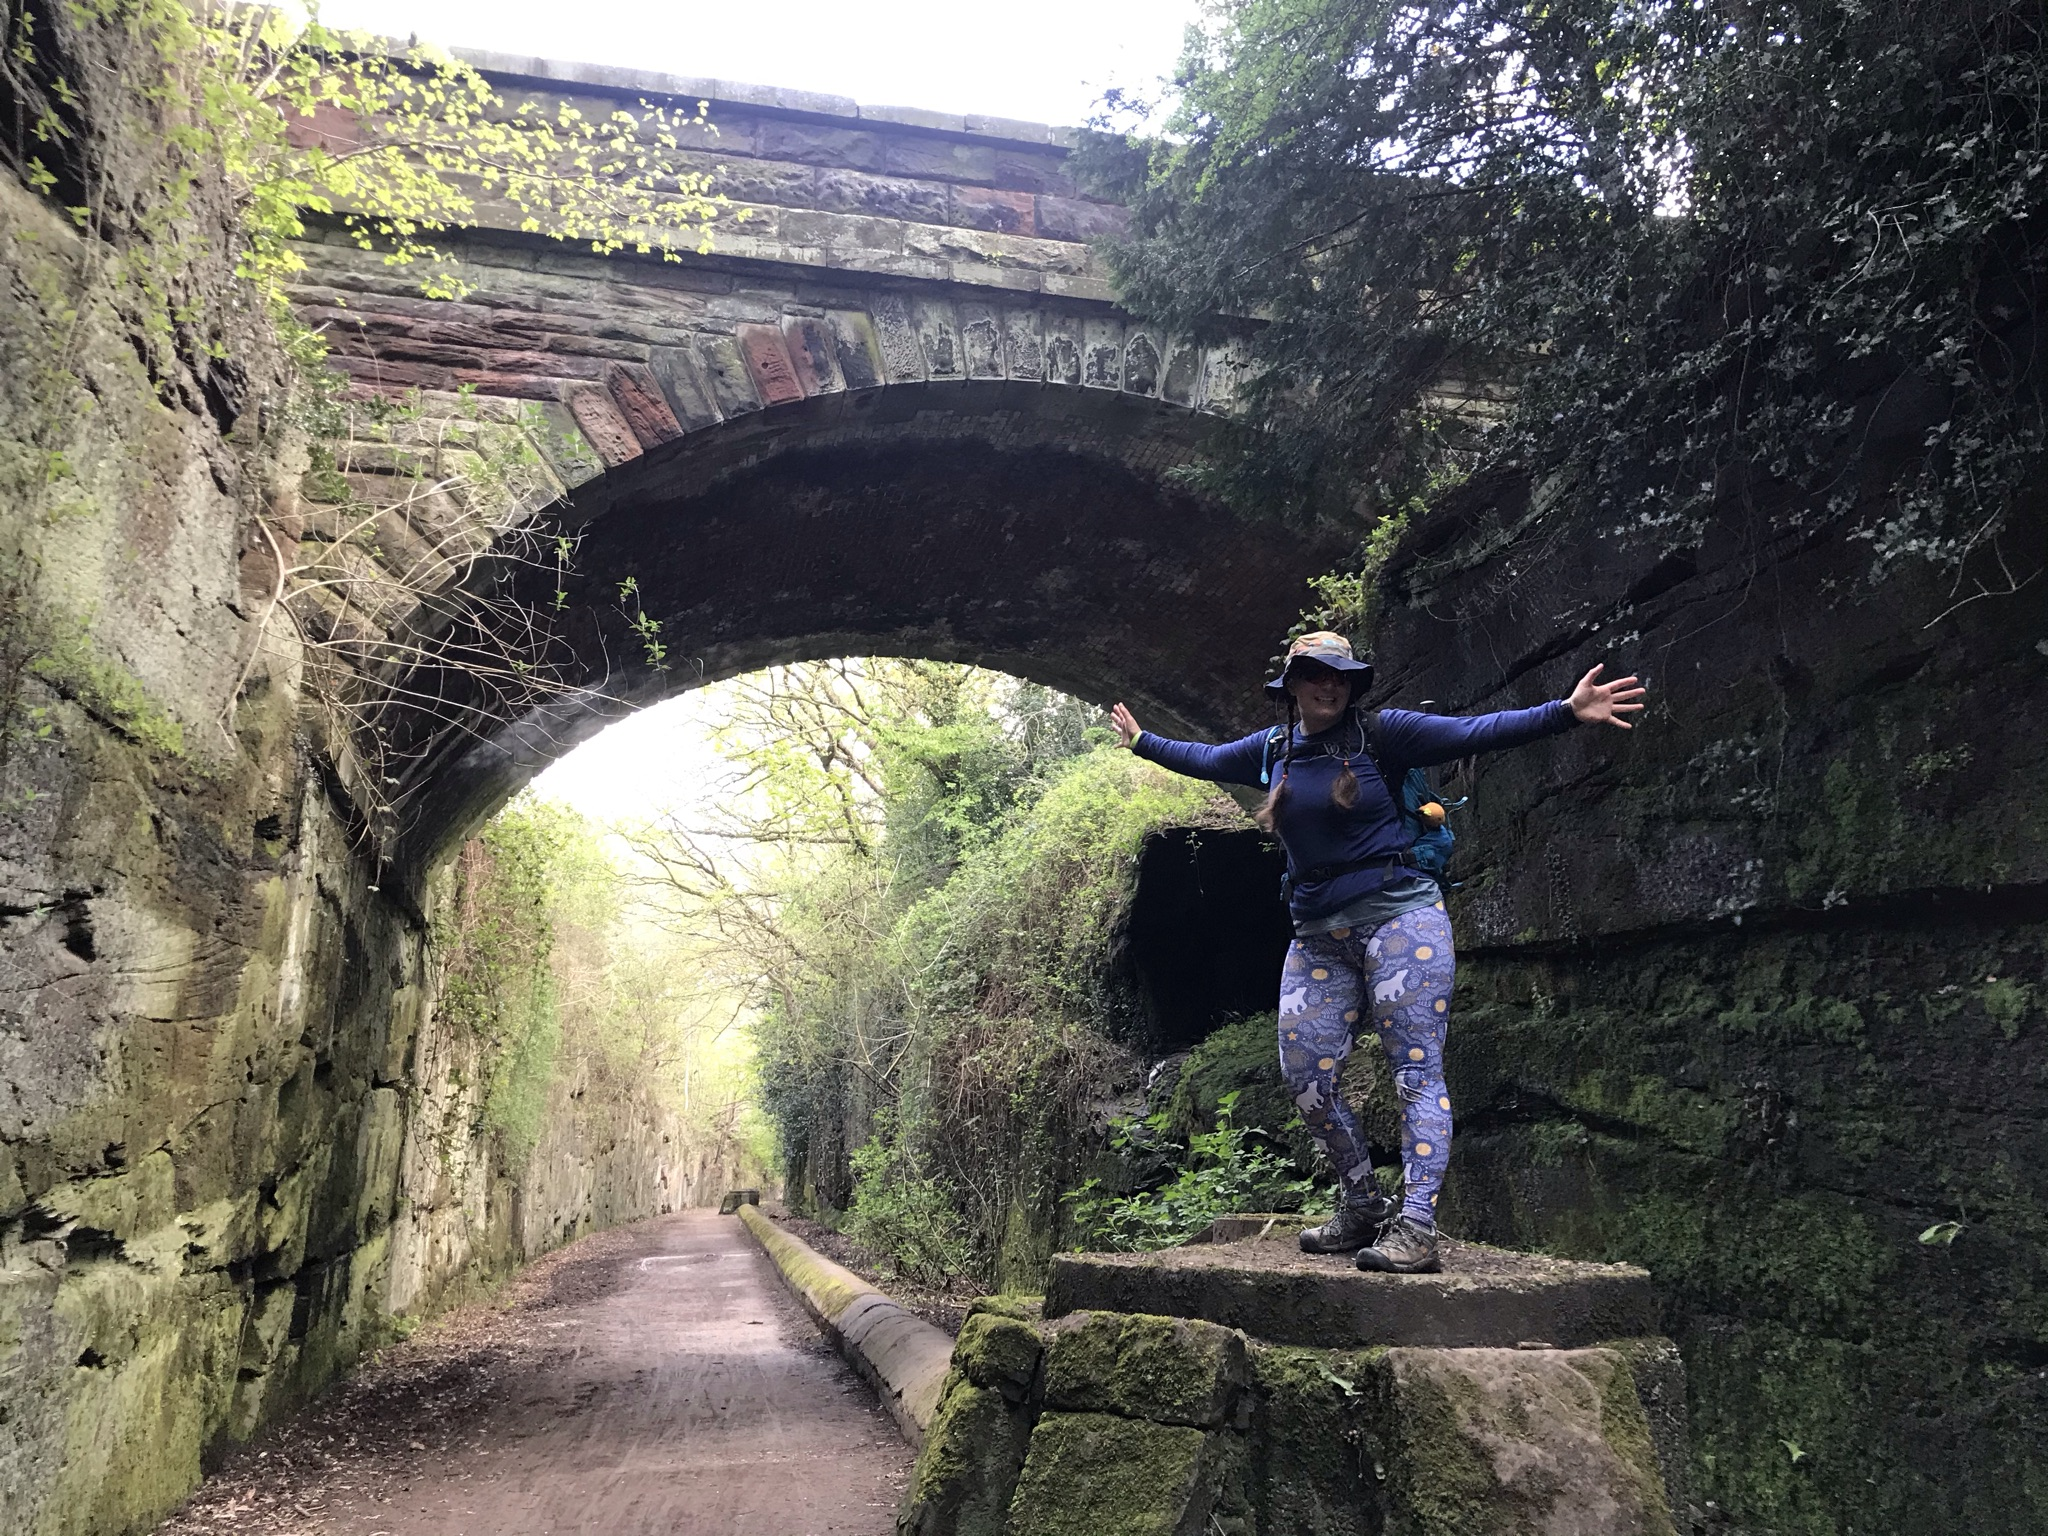 Ellen stands posing on a stone structure. The path is a disused railway in a deep cutting in the rock. Behind her is a bridge over the cutting